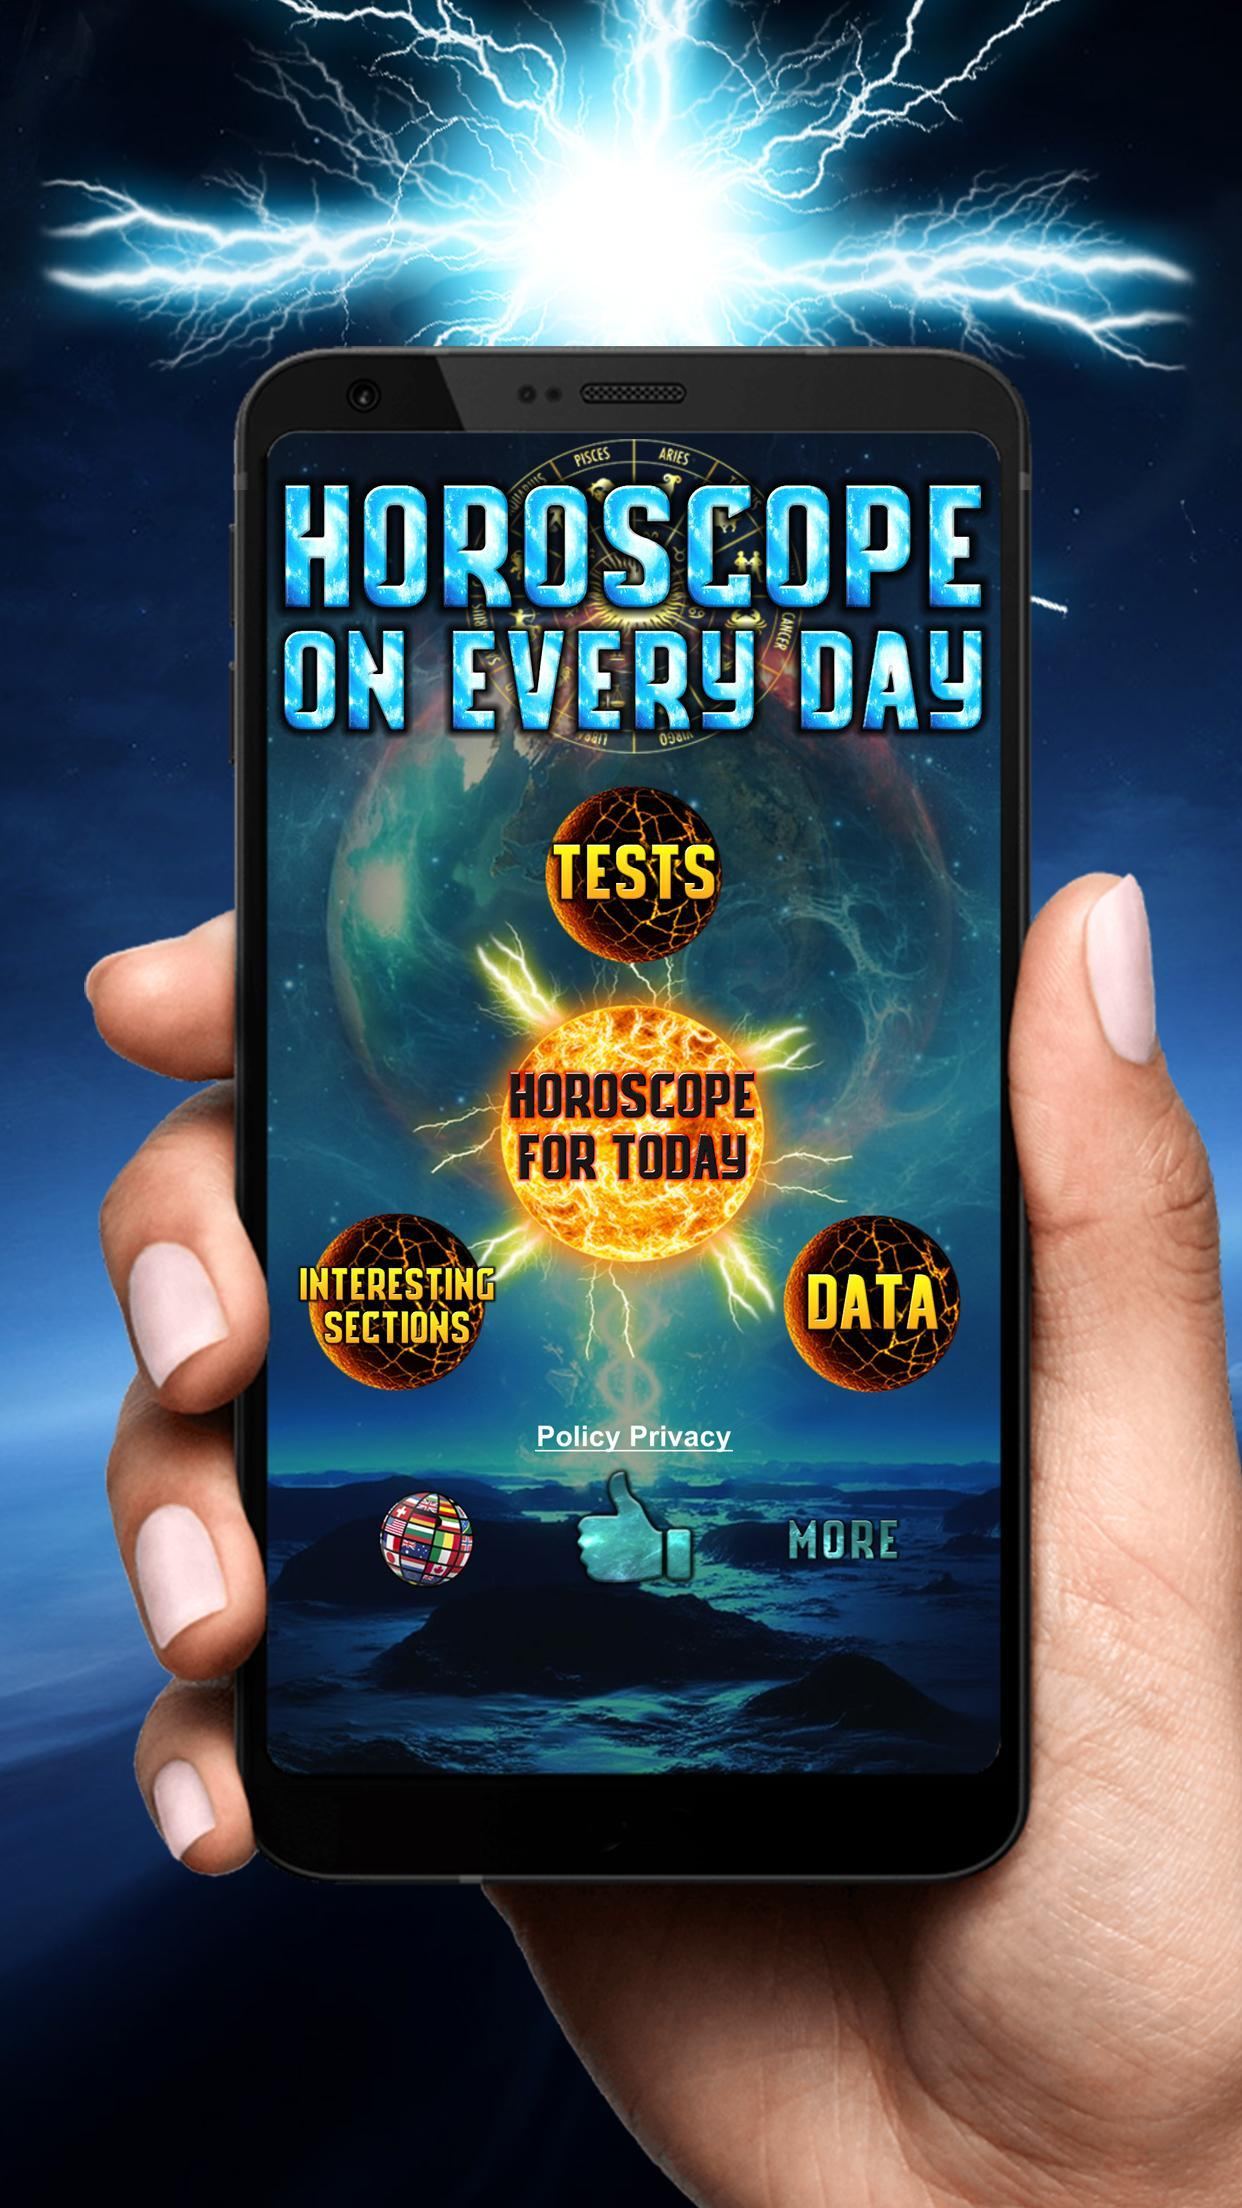 Daily Horoscope - Predictions of the Future for Android